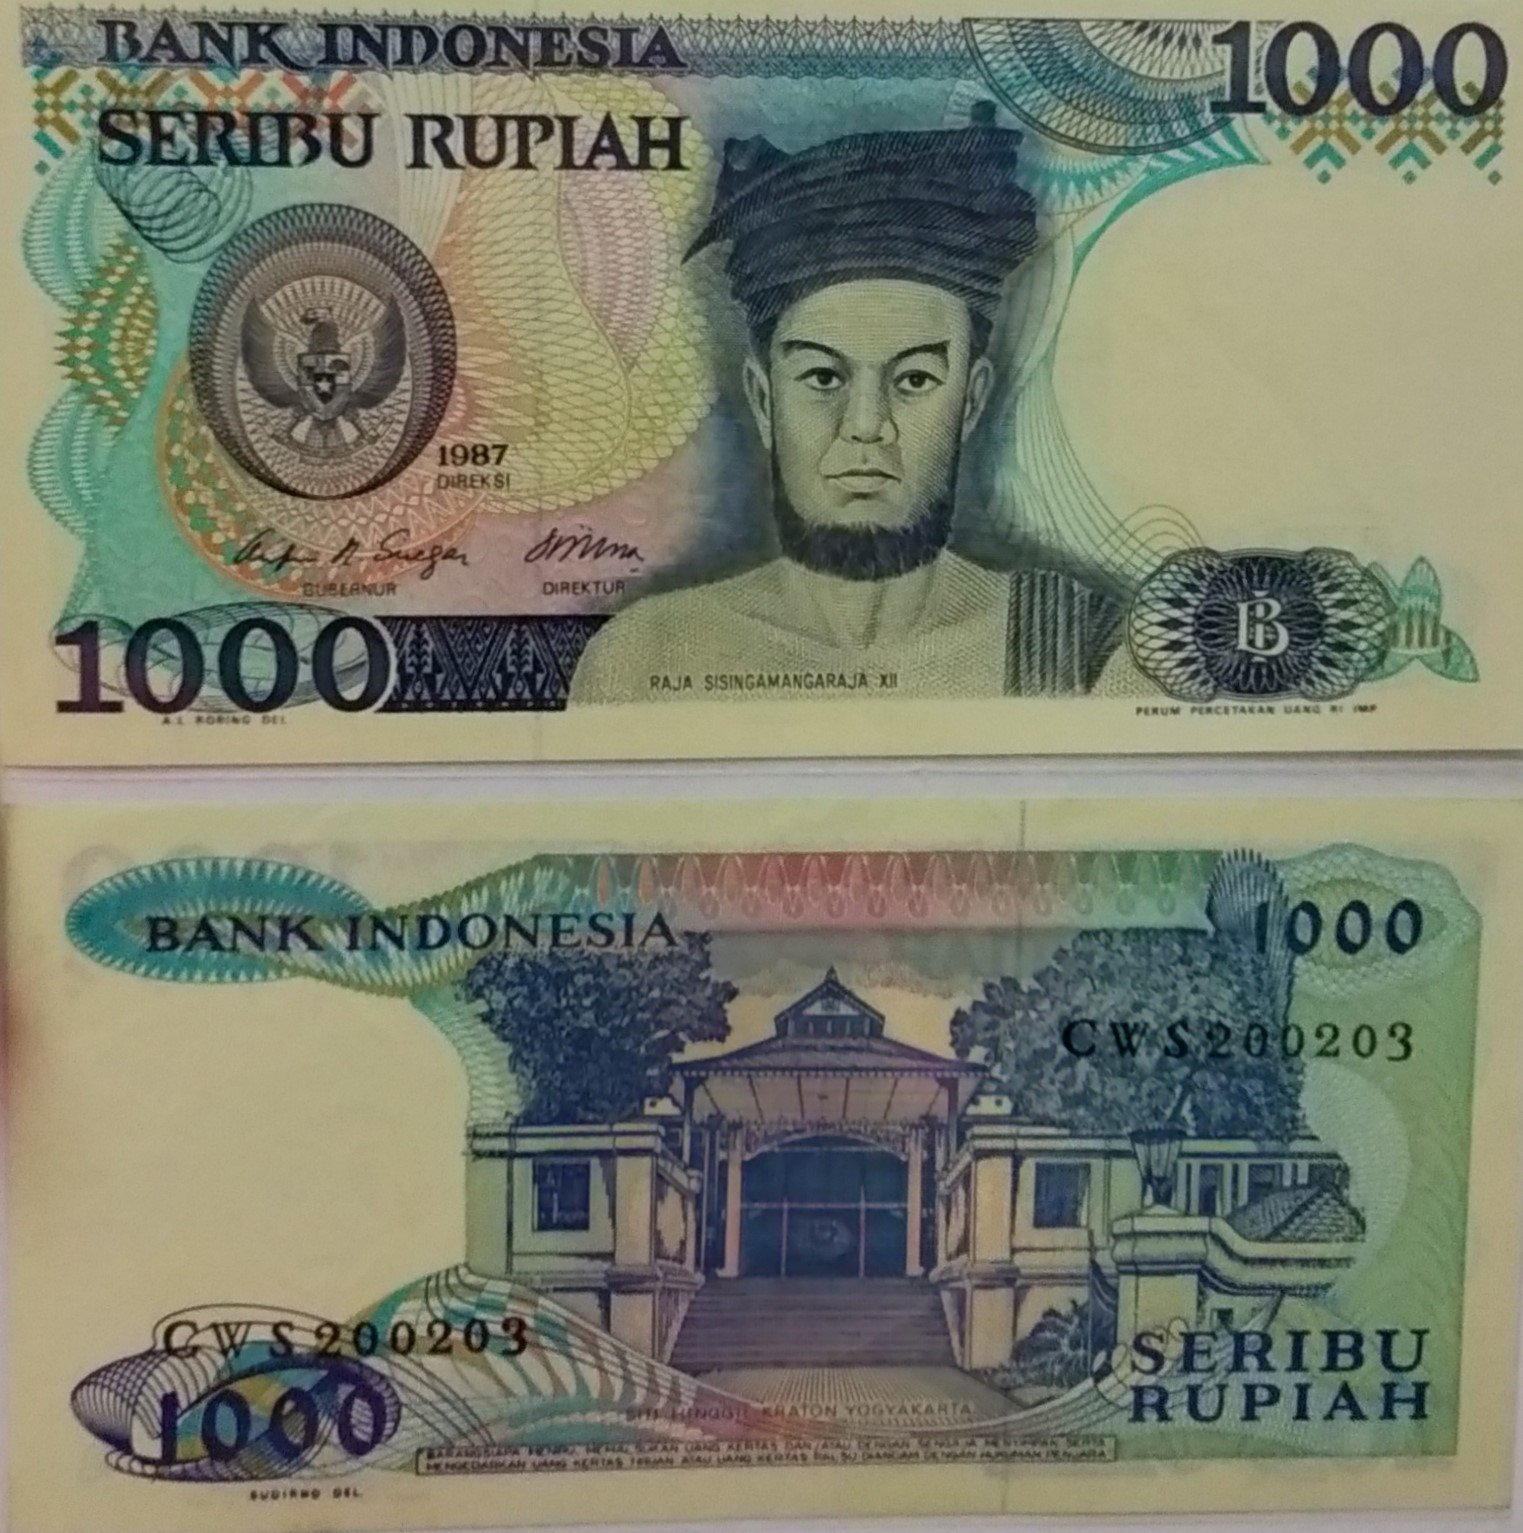 Indonesia 1000 rupiah 1987 banknote for sale